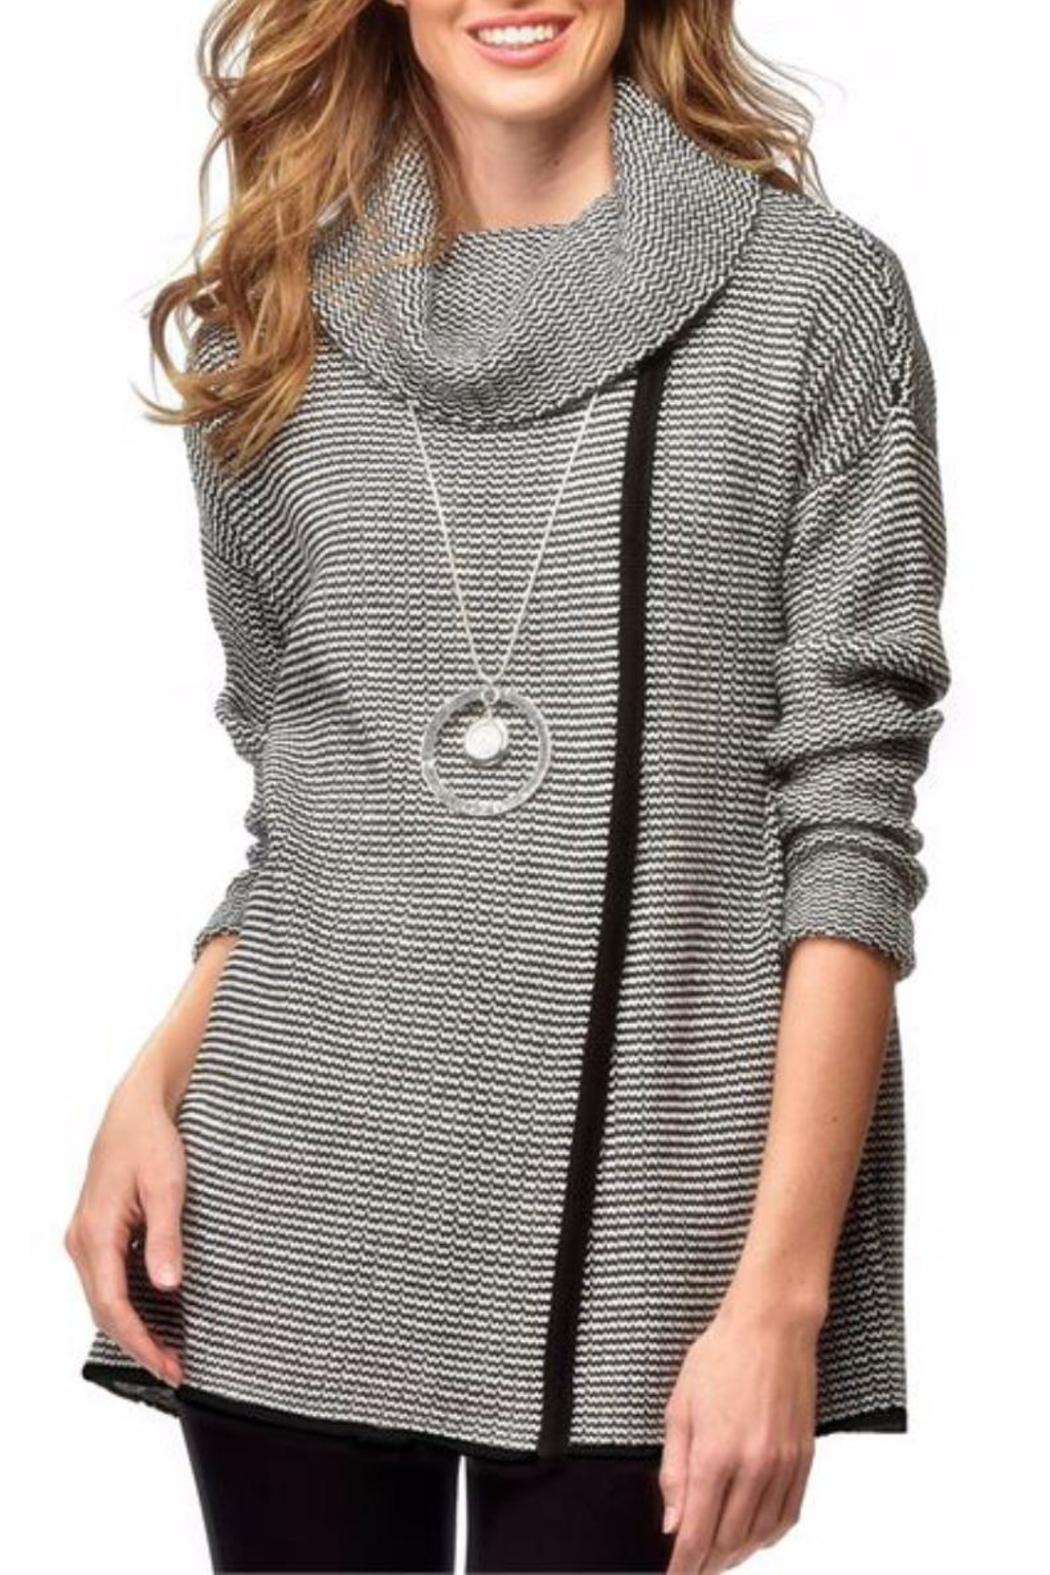 Charlie Paige Chandal Cowl Sweater - Main Image